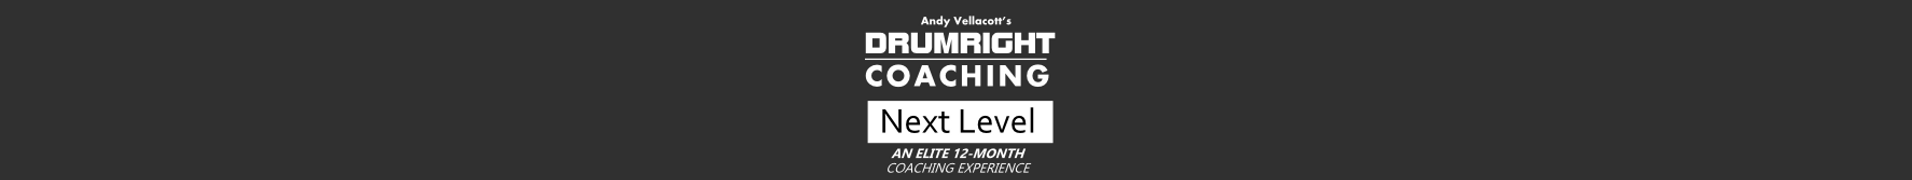 Next Level Coaching Banner.png